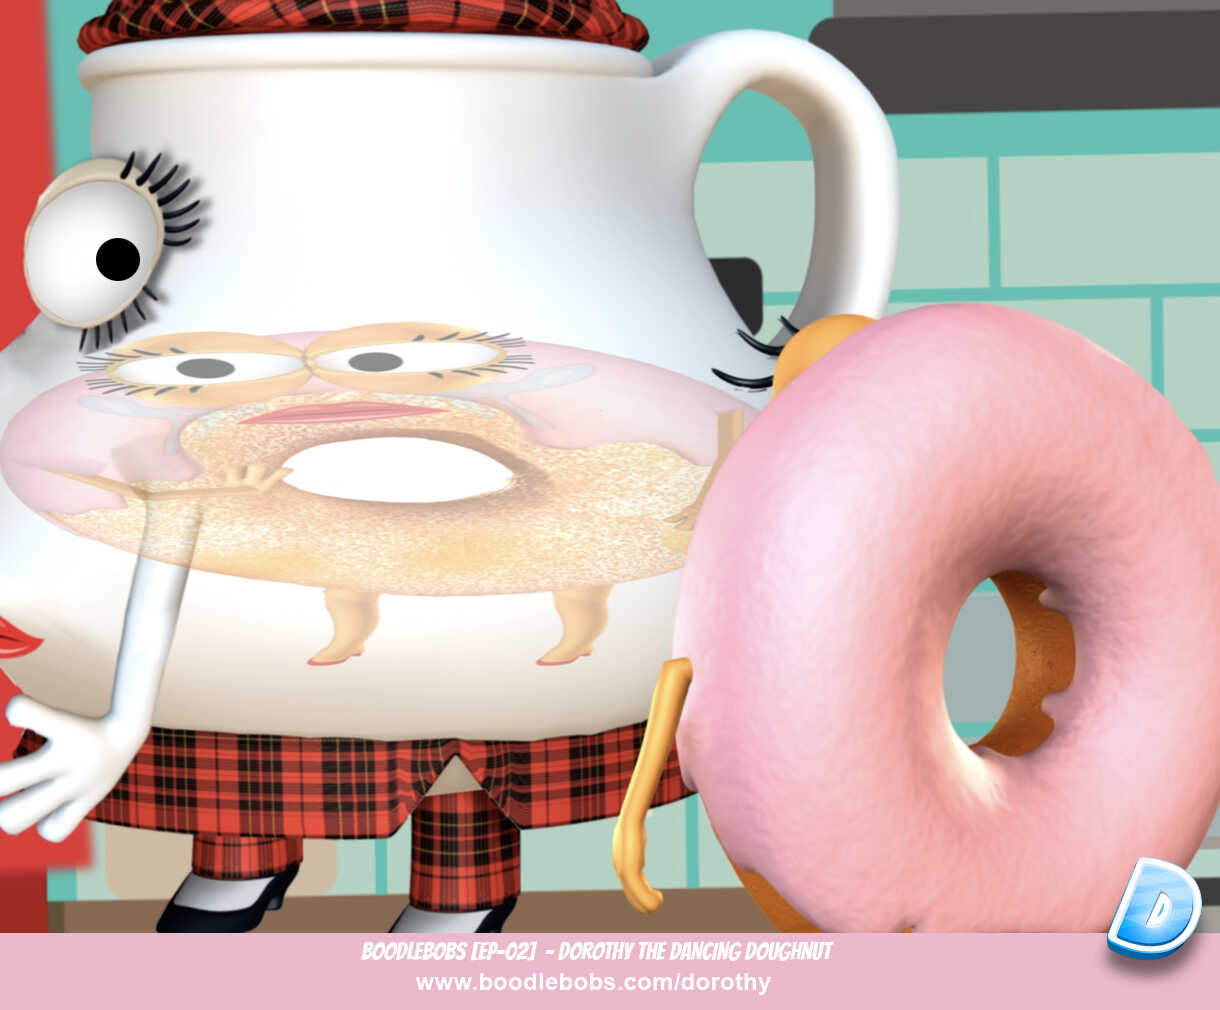 Bedtime Stories For Kids - Dorothy The Dancing Doughnut Tina Reflection Image - BoodleBobs 02